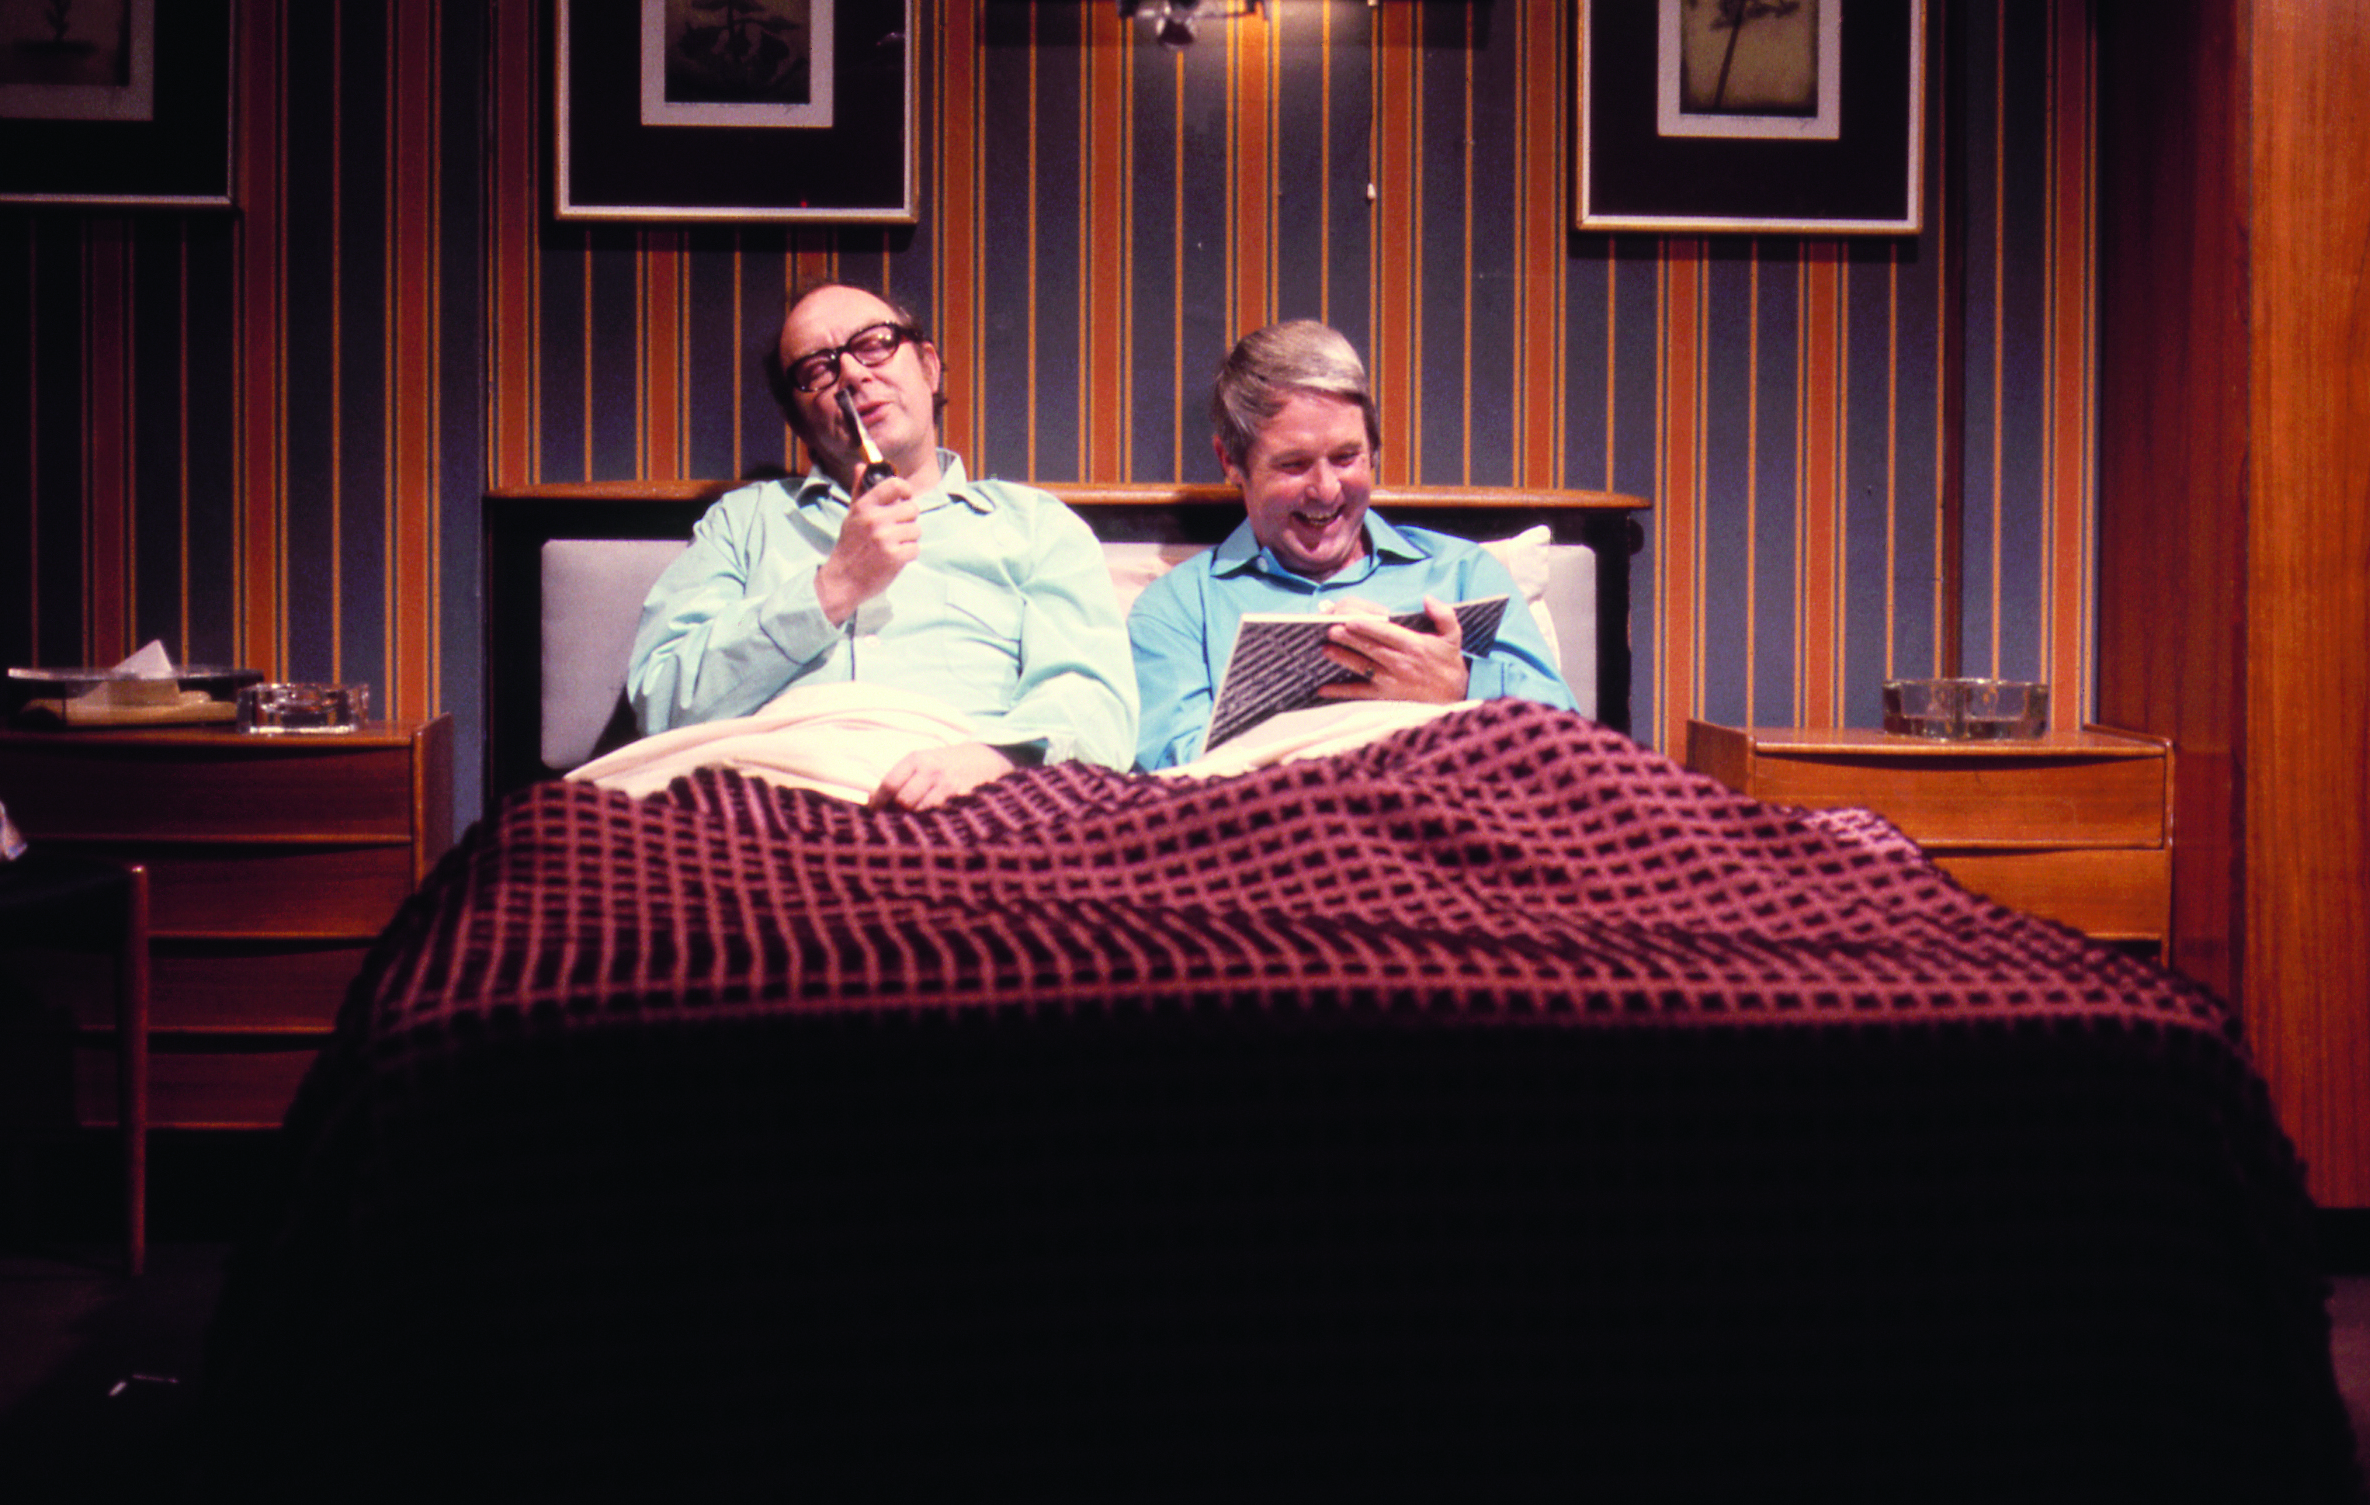 This fond five-part tribute, narrated by Victoria Wood, continues with 'At Home with Eric and Ern', a look at the sketches based around the theme of home.